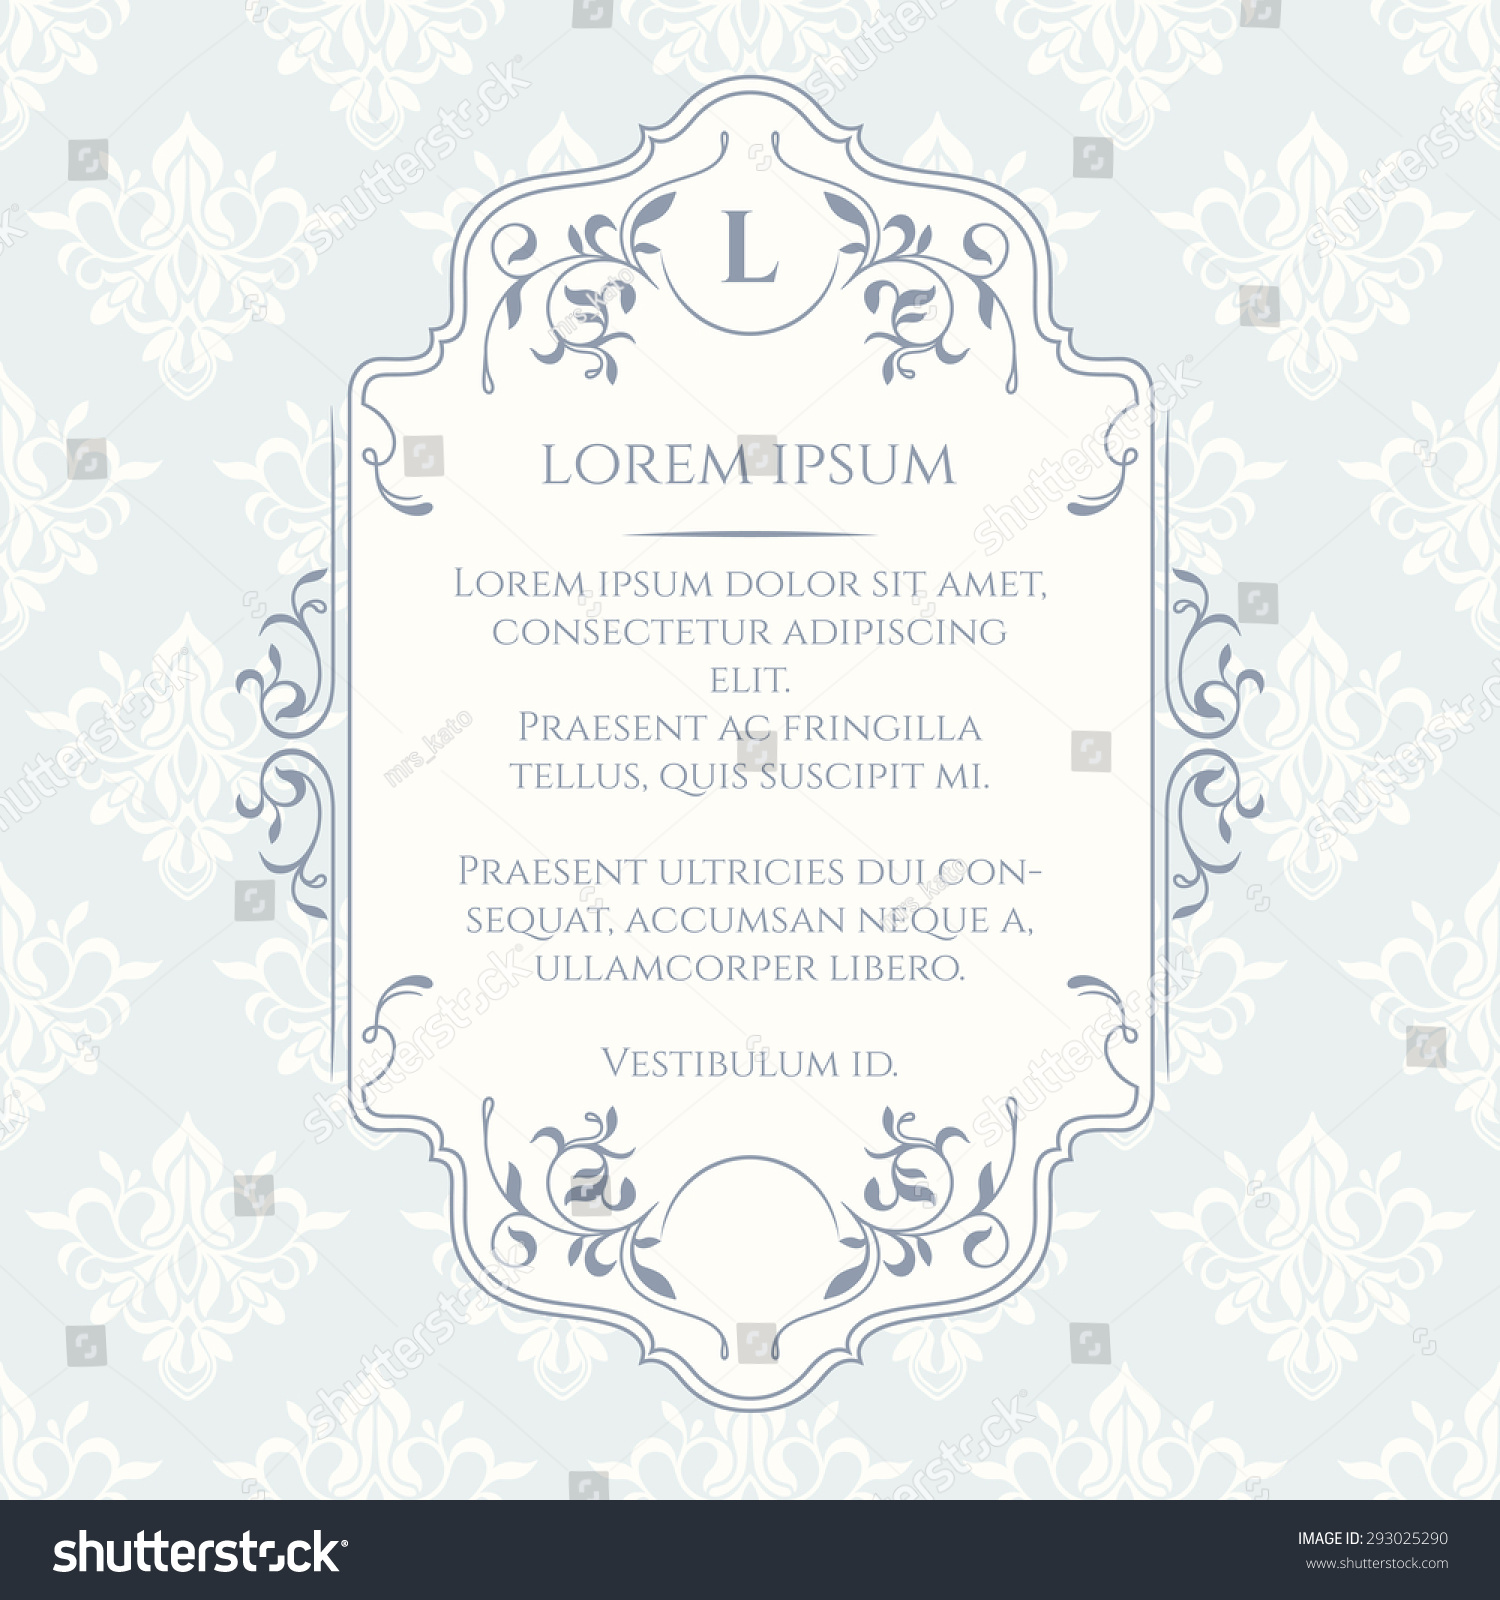 Frame border and classic seamless pattern Template for greeting cards invitations labels Decorative frame Graphic design page